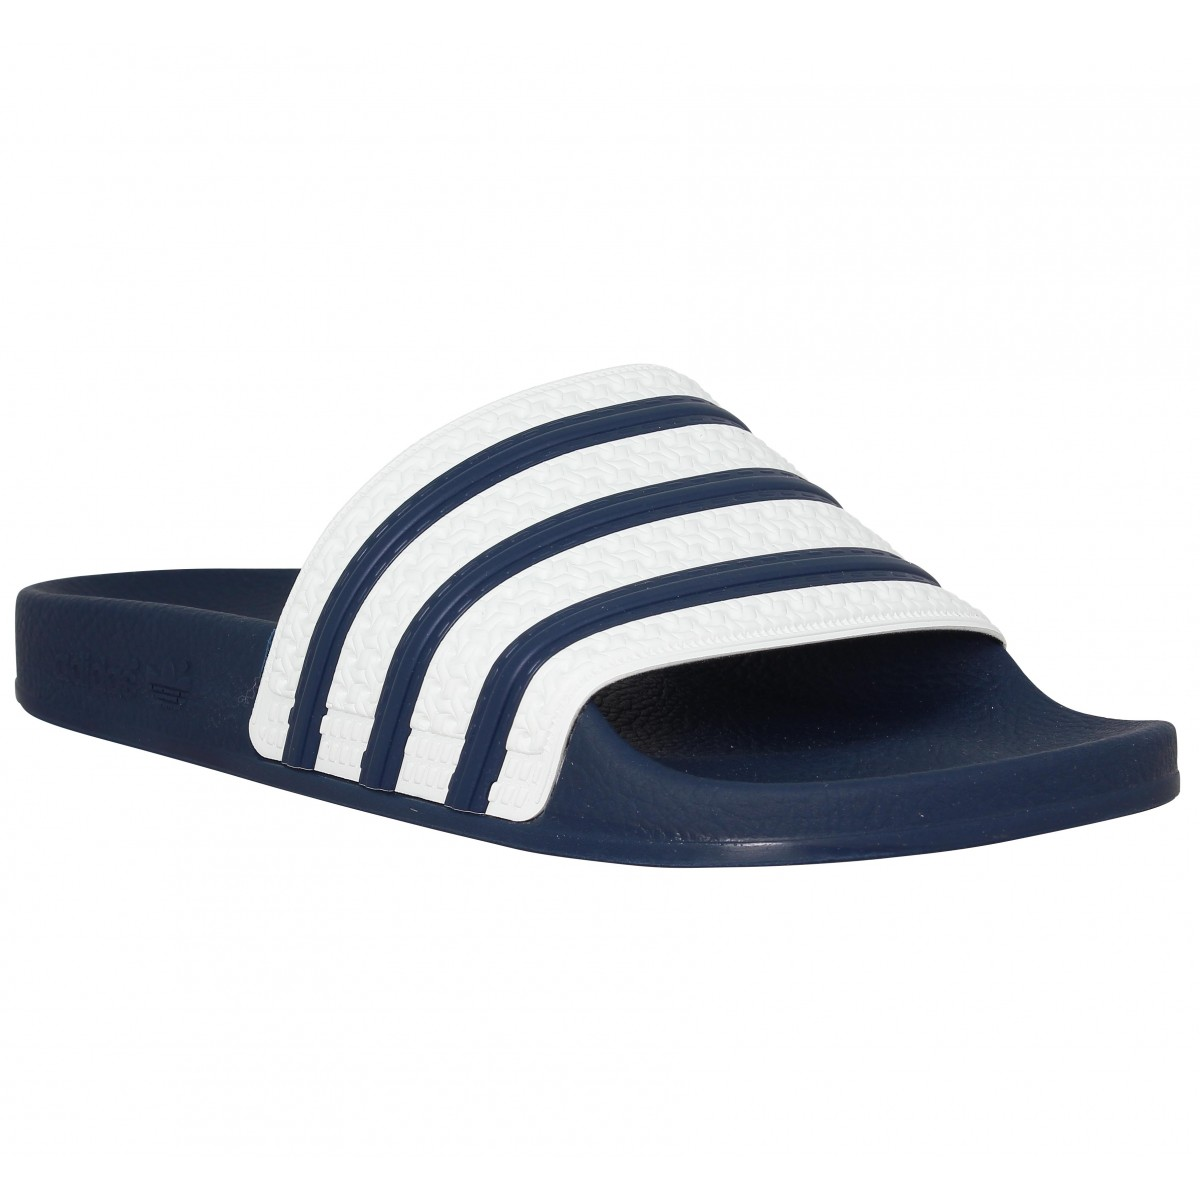 buy popular 8083f 8a8b5 Tongs ADIDAS Adilette Homme Bleu